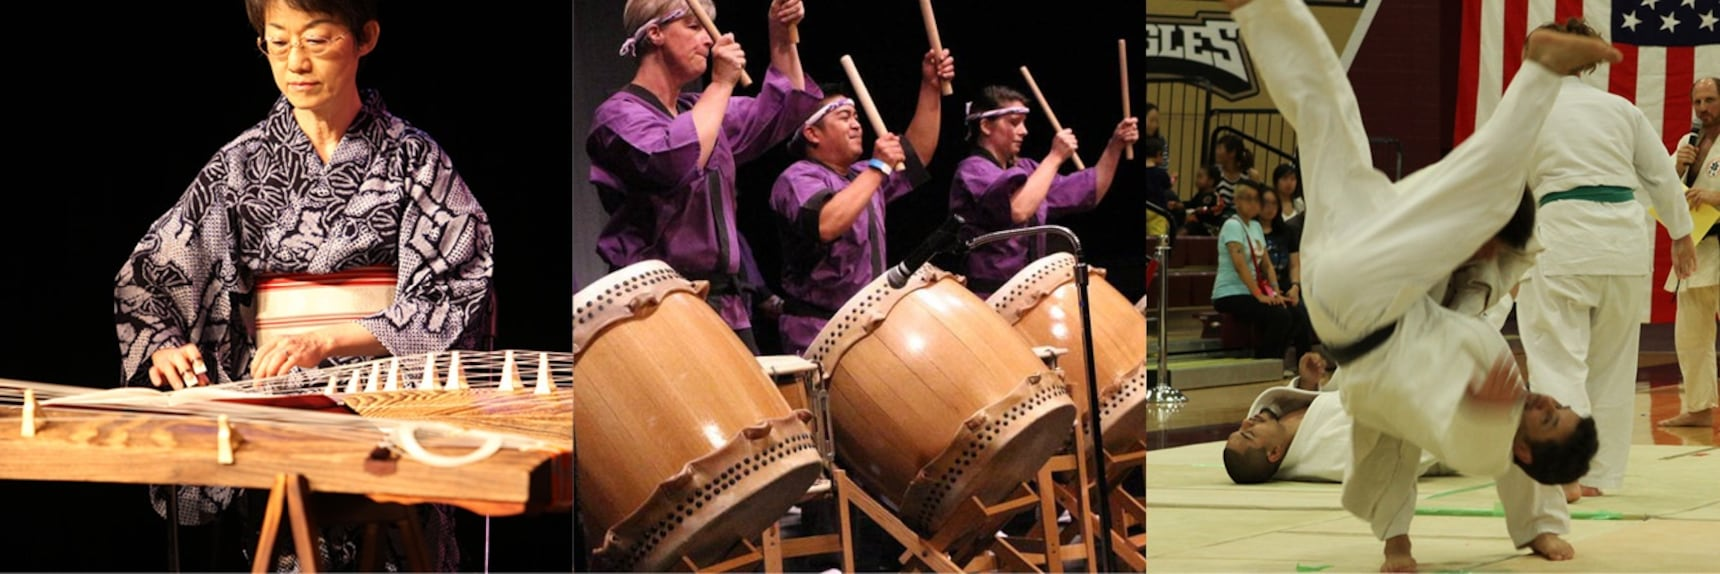 5 Japanese Festivals in the US